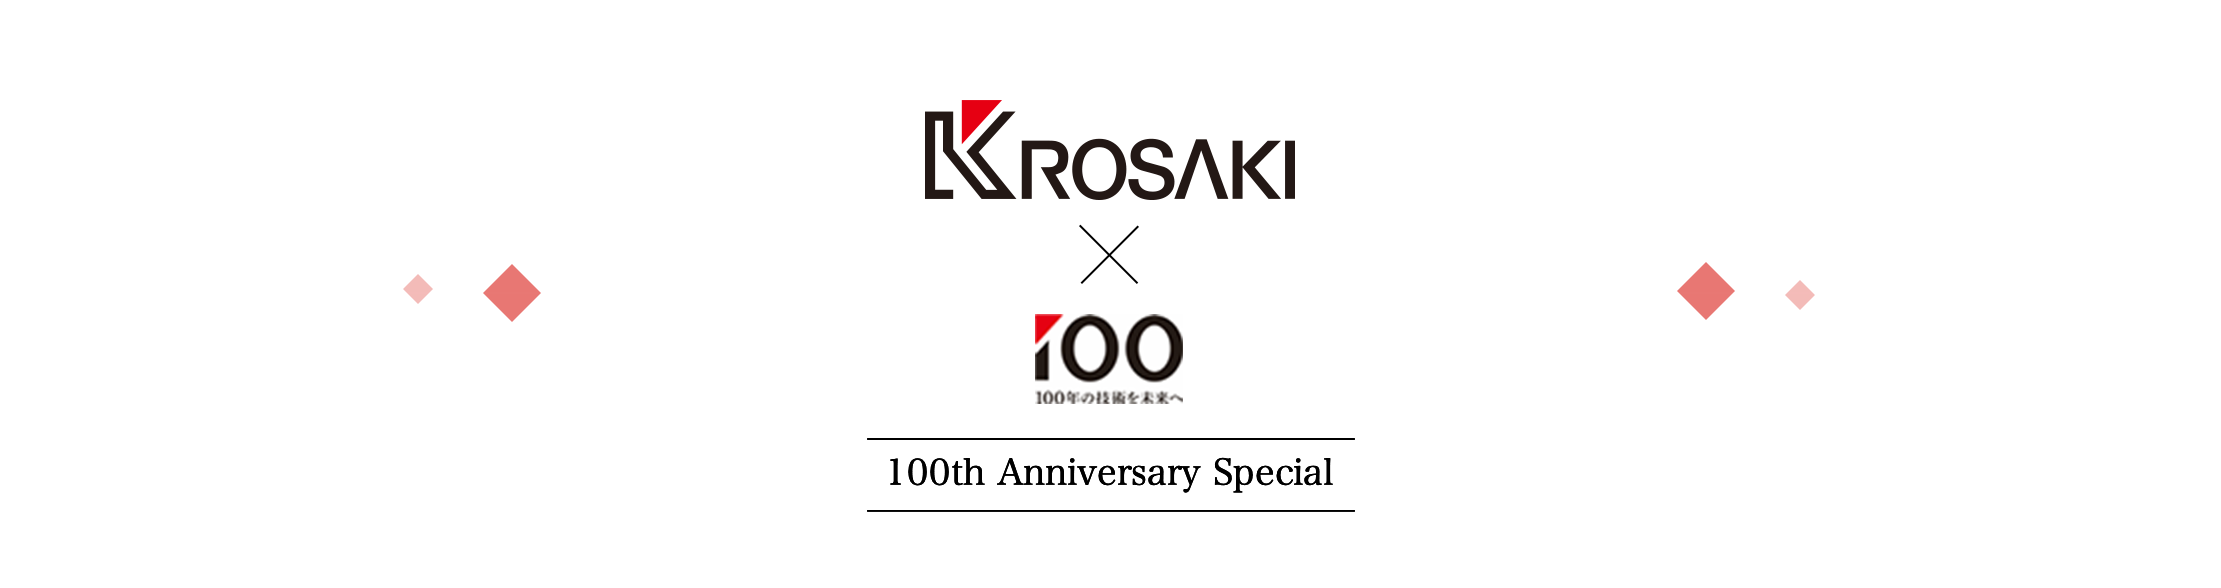 100th Anniversary Special